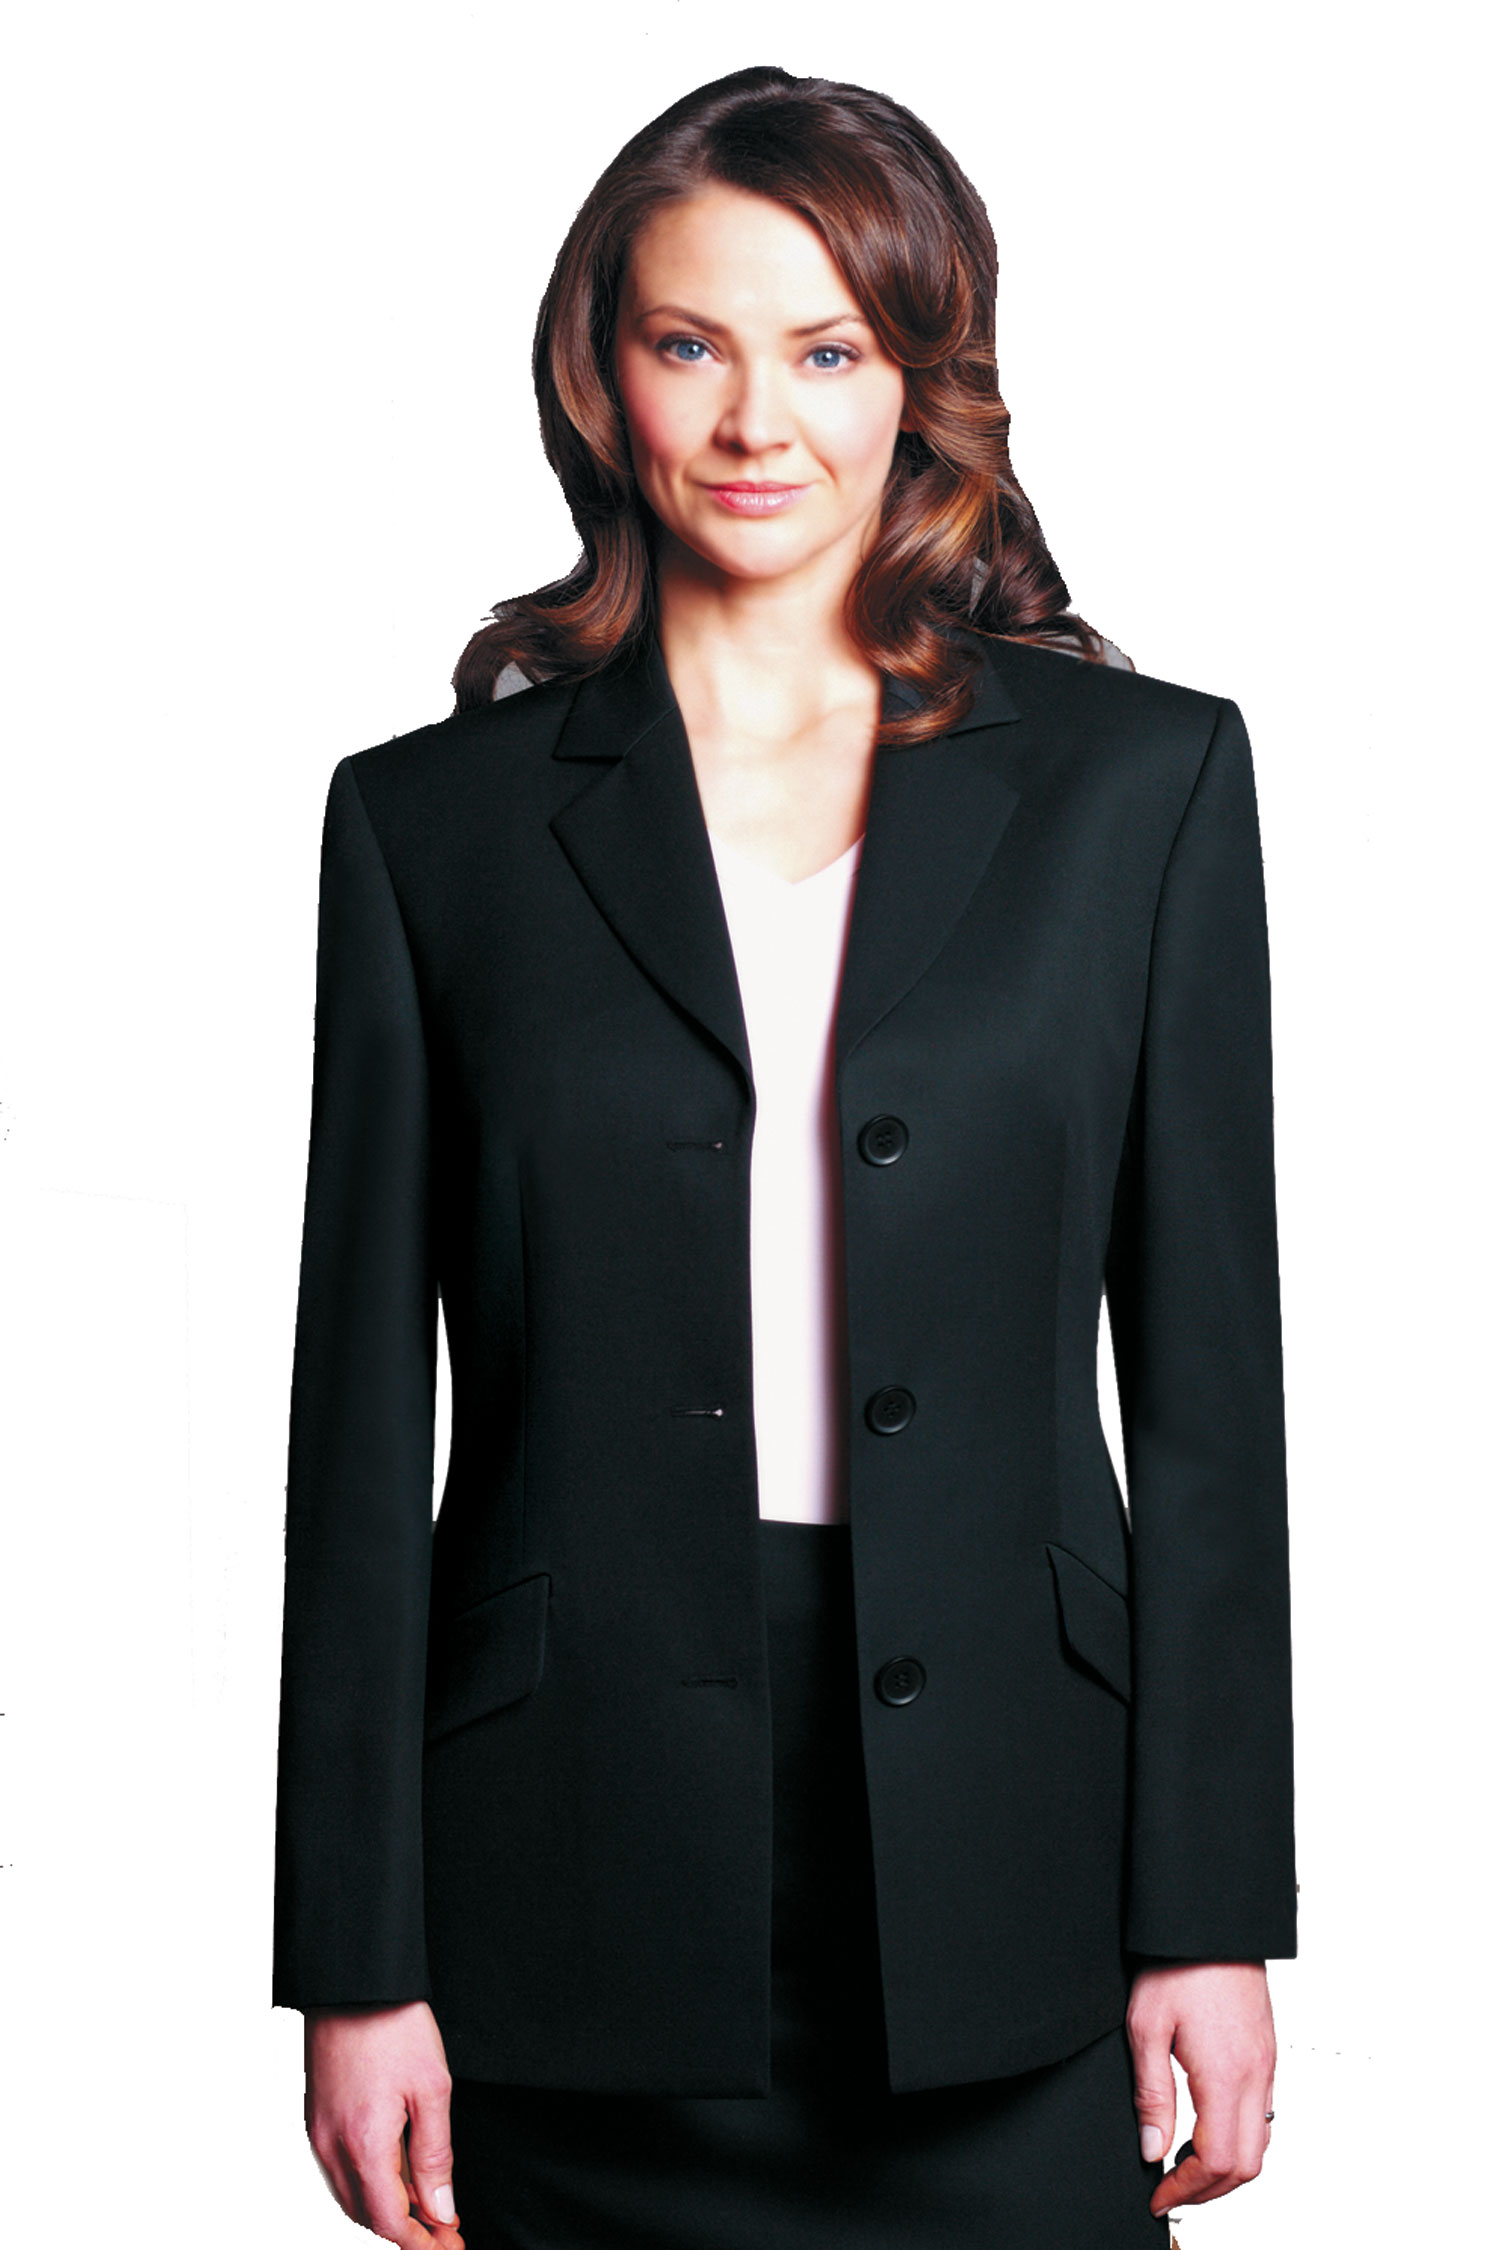 Skirt Suits: Free Shipping on orders over $45 at jomp16.tk - Your Online Suits & Suit Separates Store! Get 5% in rewards with Club O!